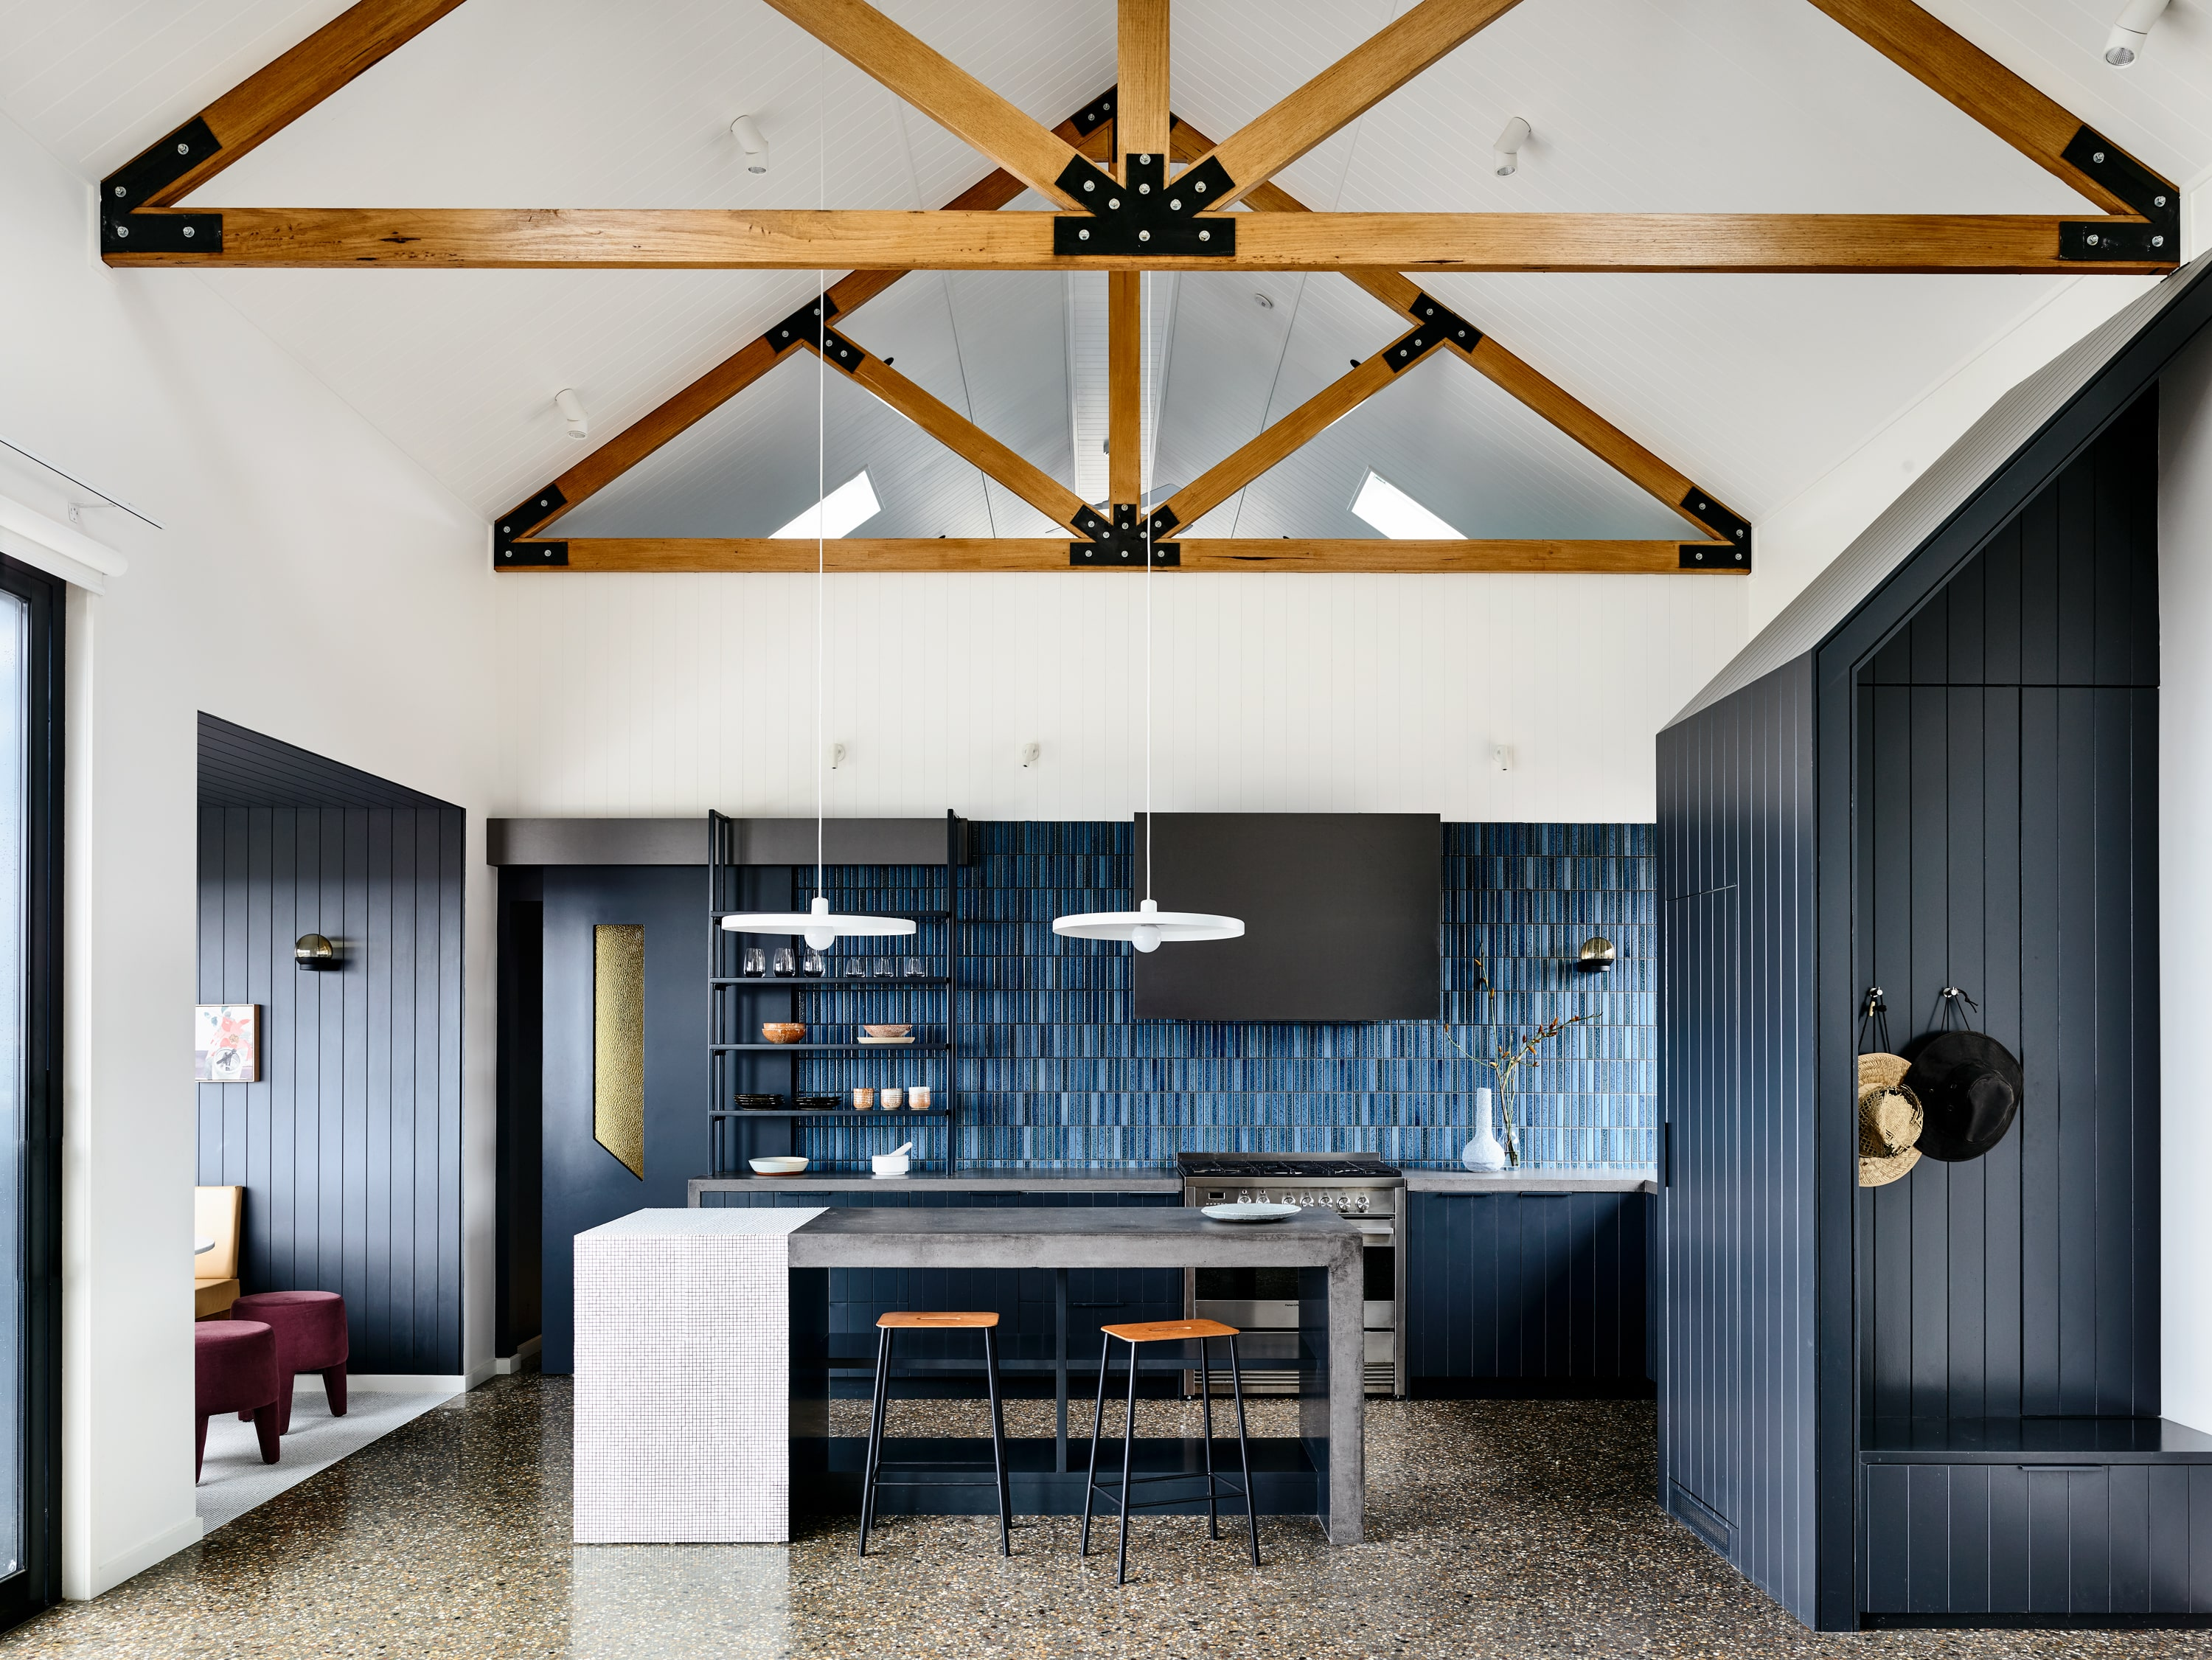 Gallery Of Beechworth Residence By Doherty Design Studio Local Residential Architecture Beechworth, Vic Image 1